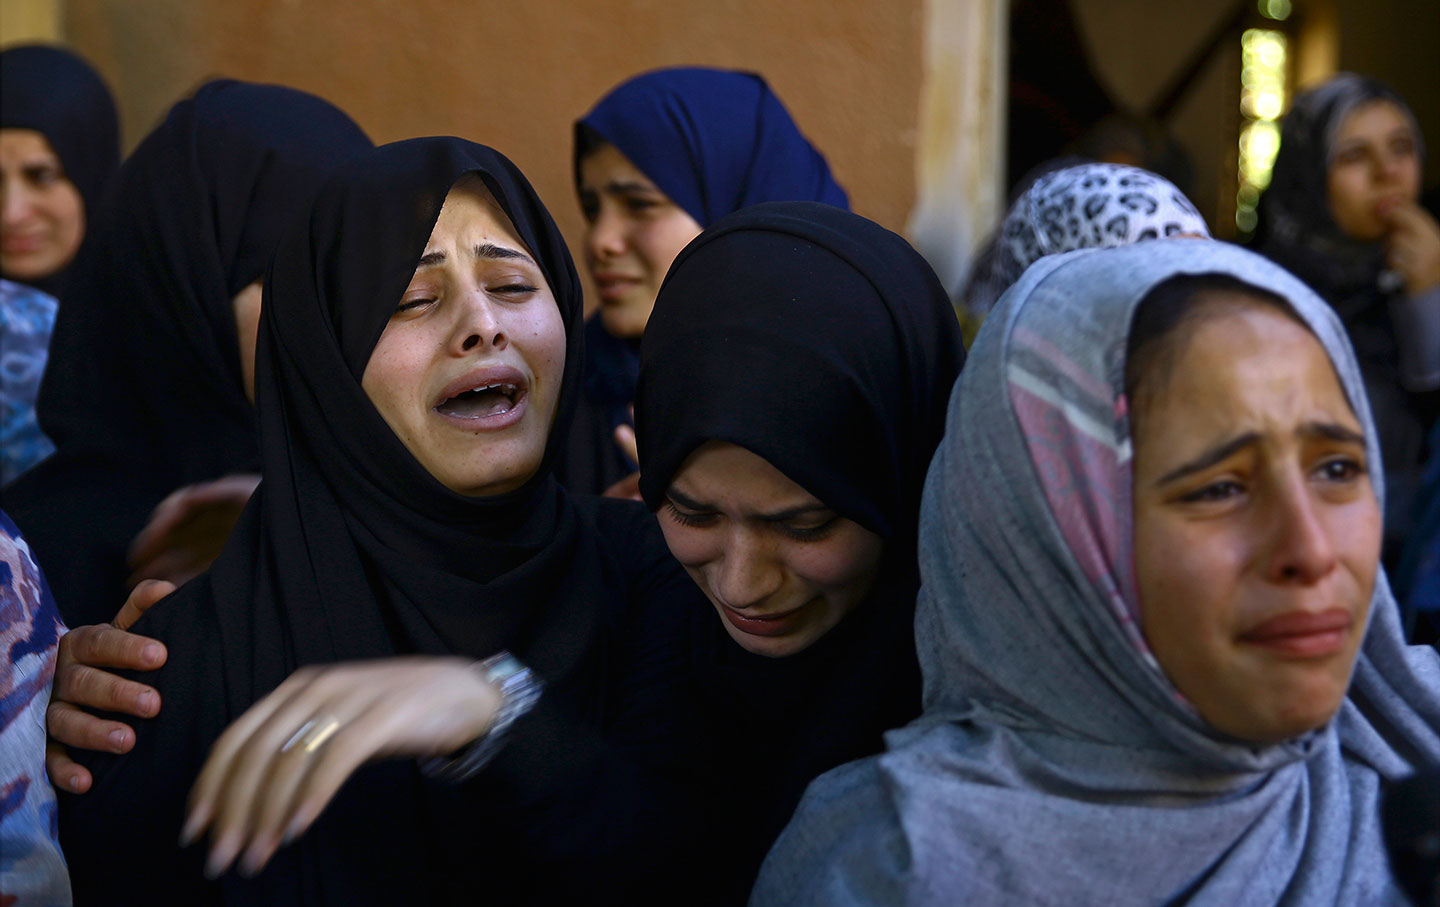 Palestinian Family in Mourning